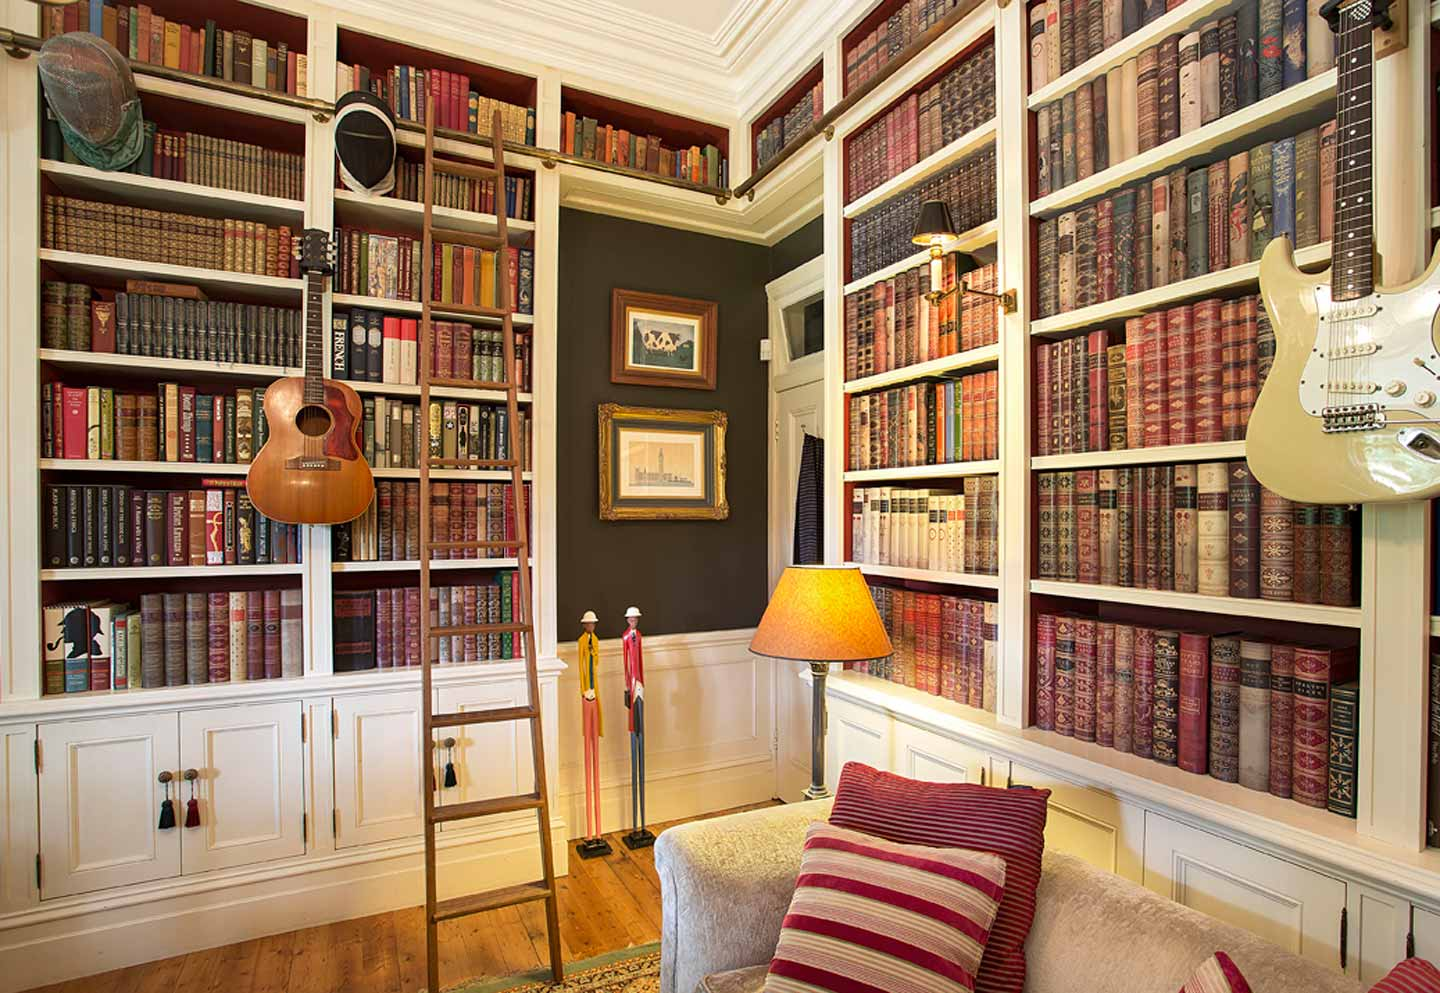 Bedroom Room Ideas Bespoke Home Library Design Groth Amp Sons Interiors Sydney